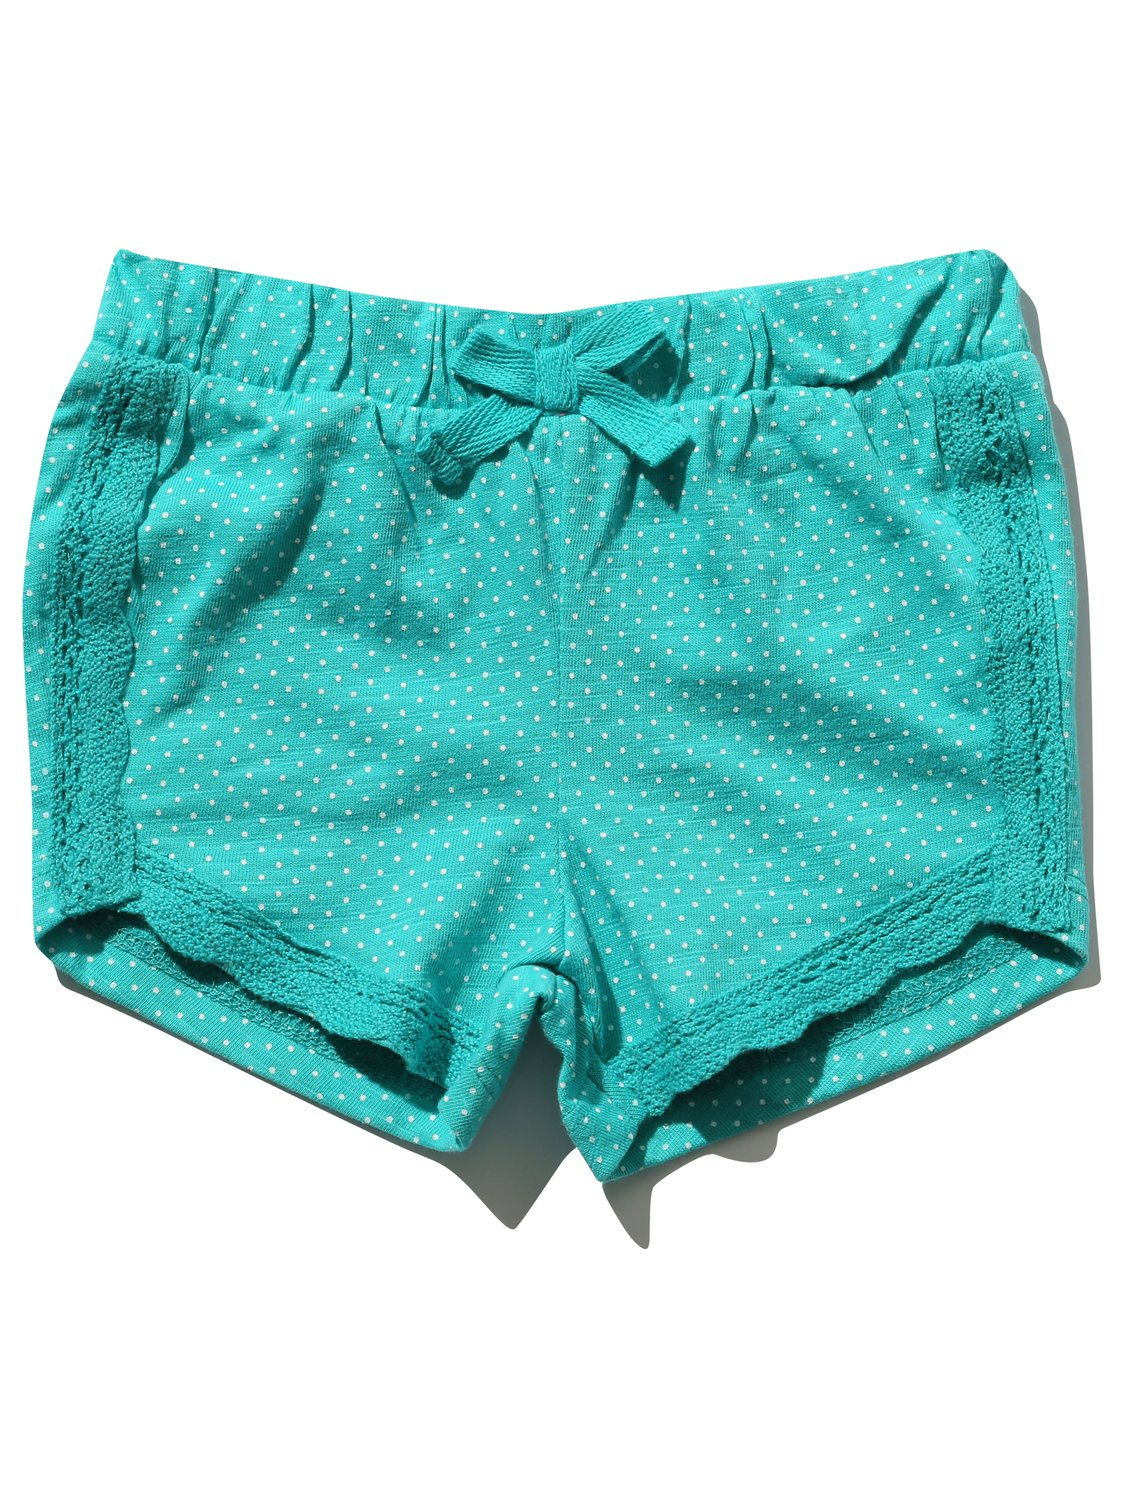 Baby girls turquoise bow front spot print lace trim pull on cotton shorts  - Turquoise